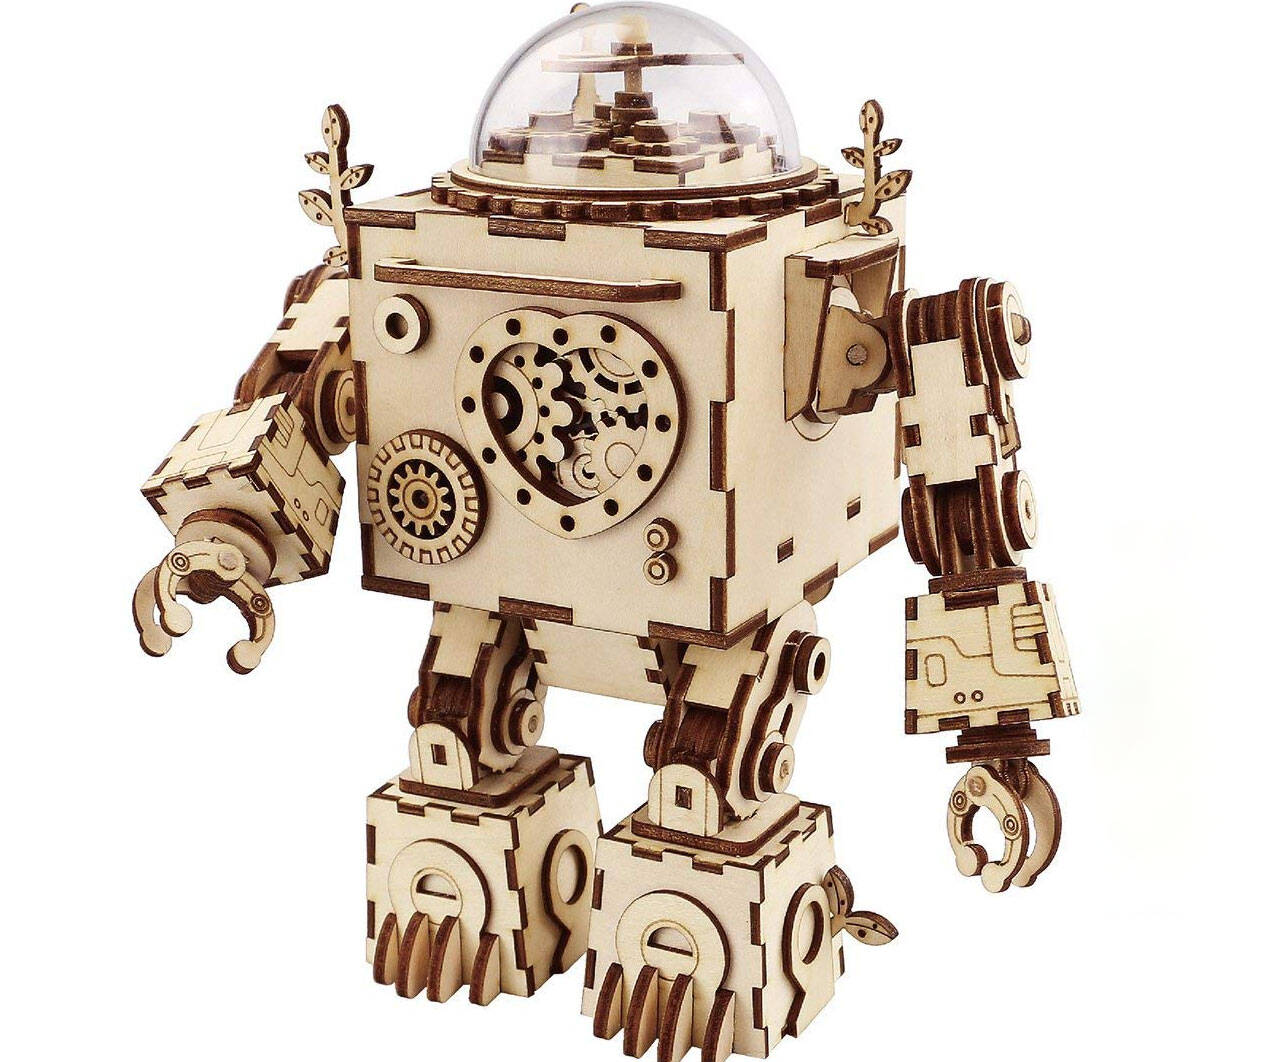 3D Robot Puzzle Music Box - http://coolthings.us